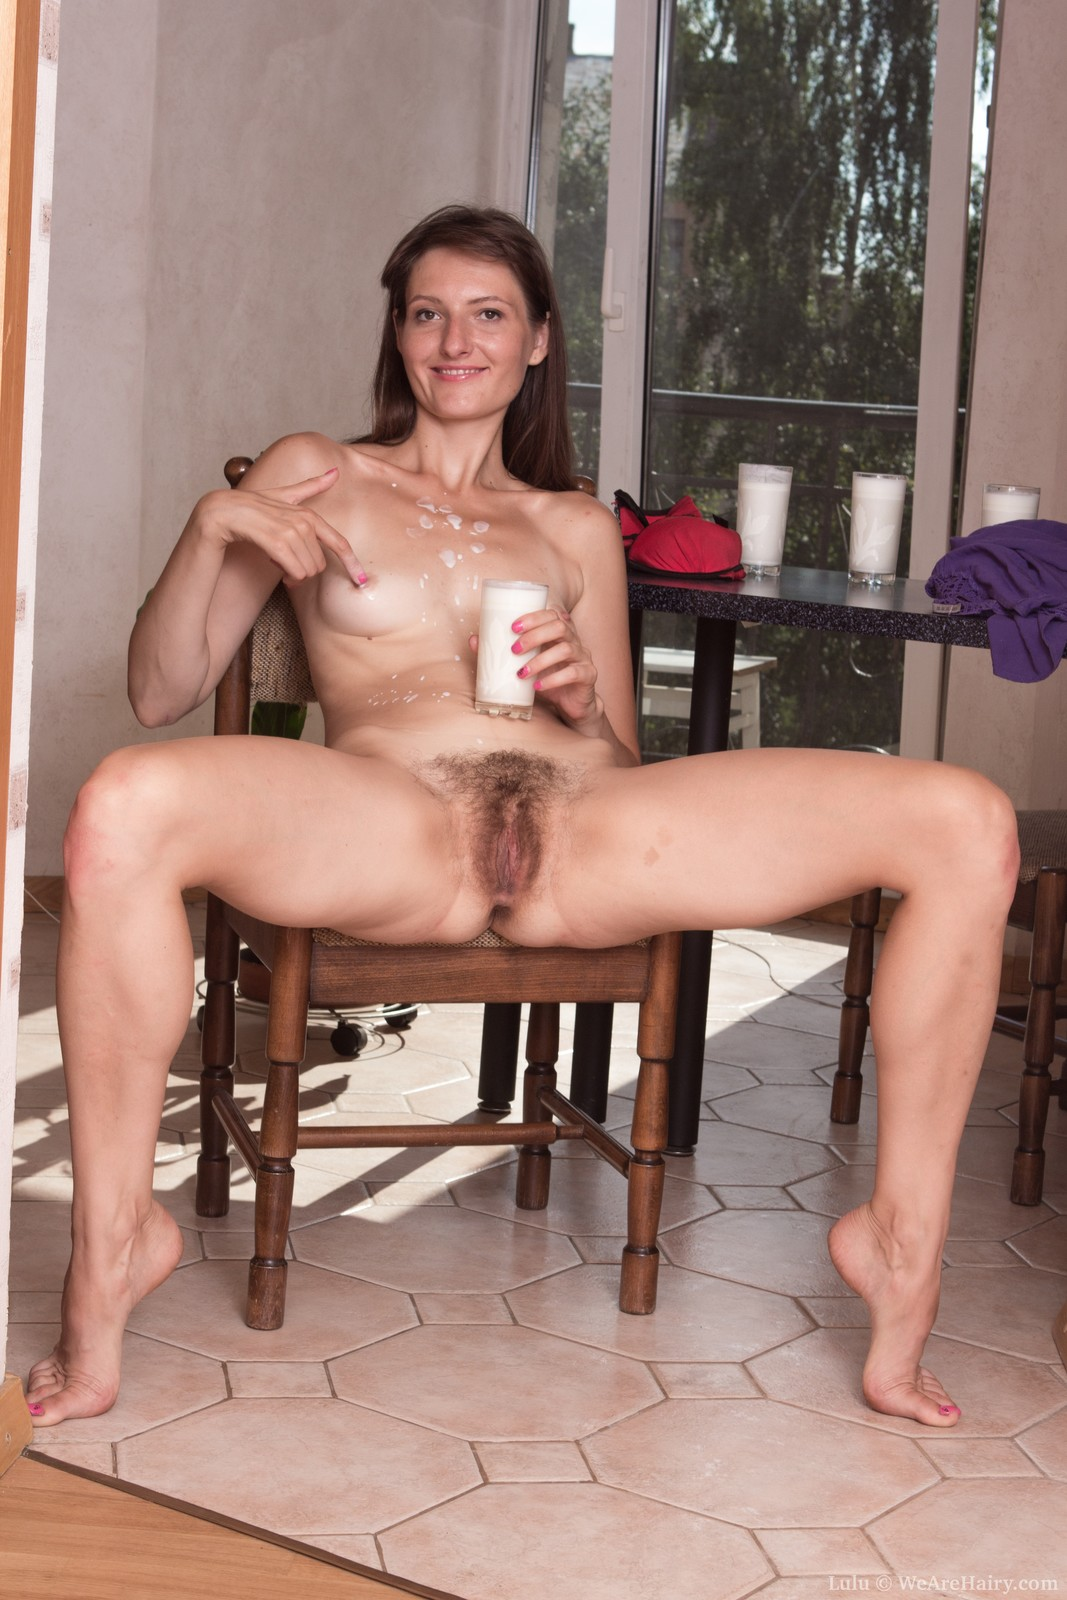 teacher barb sat on her dildo